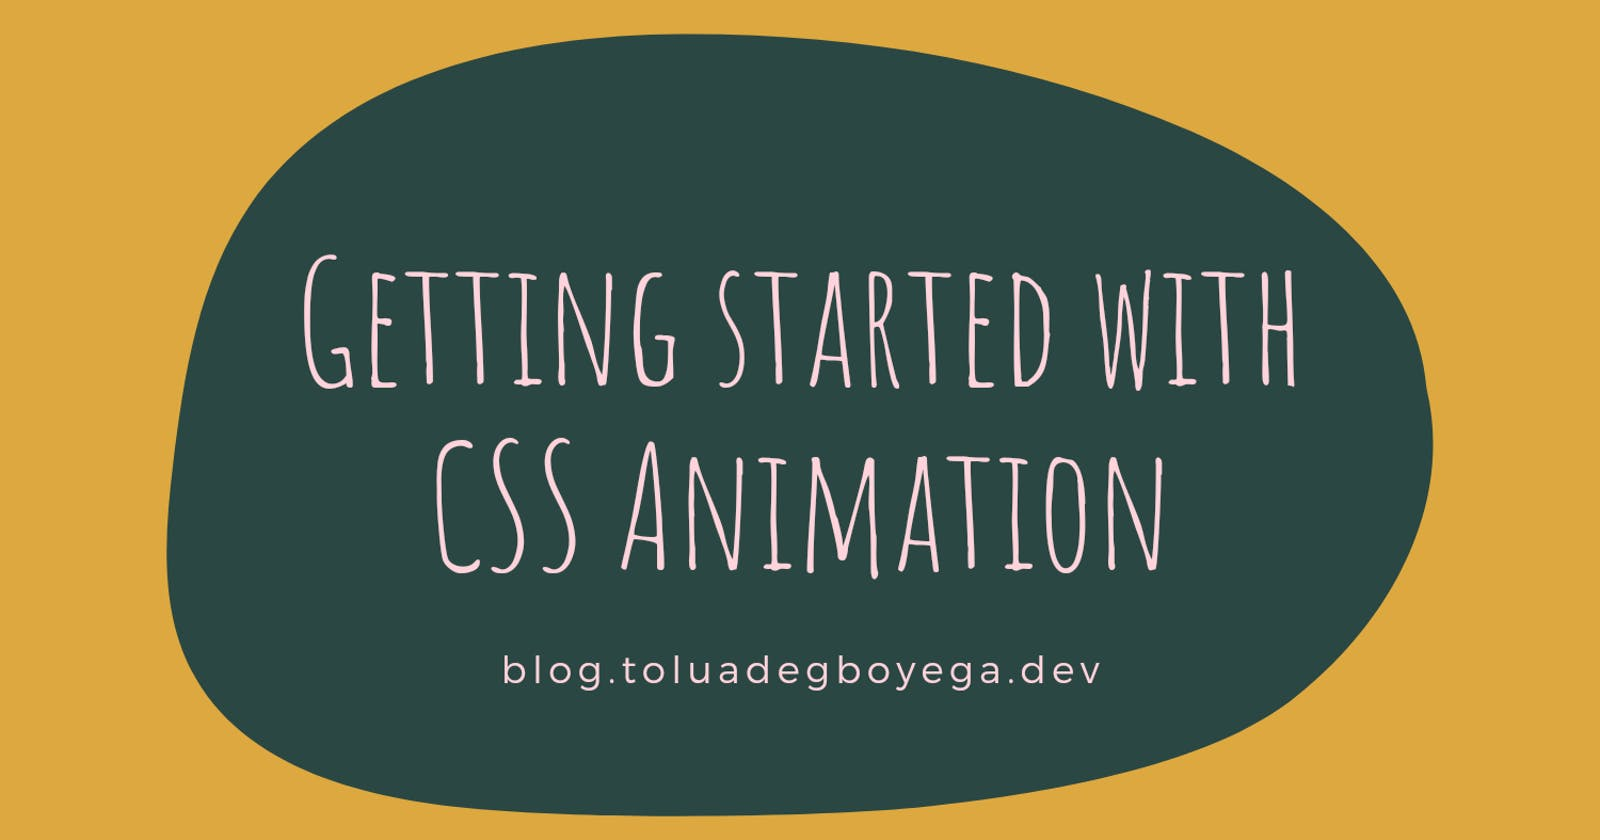 Getting Started with CSS Animation